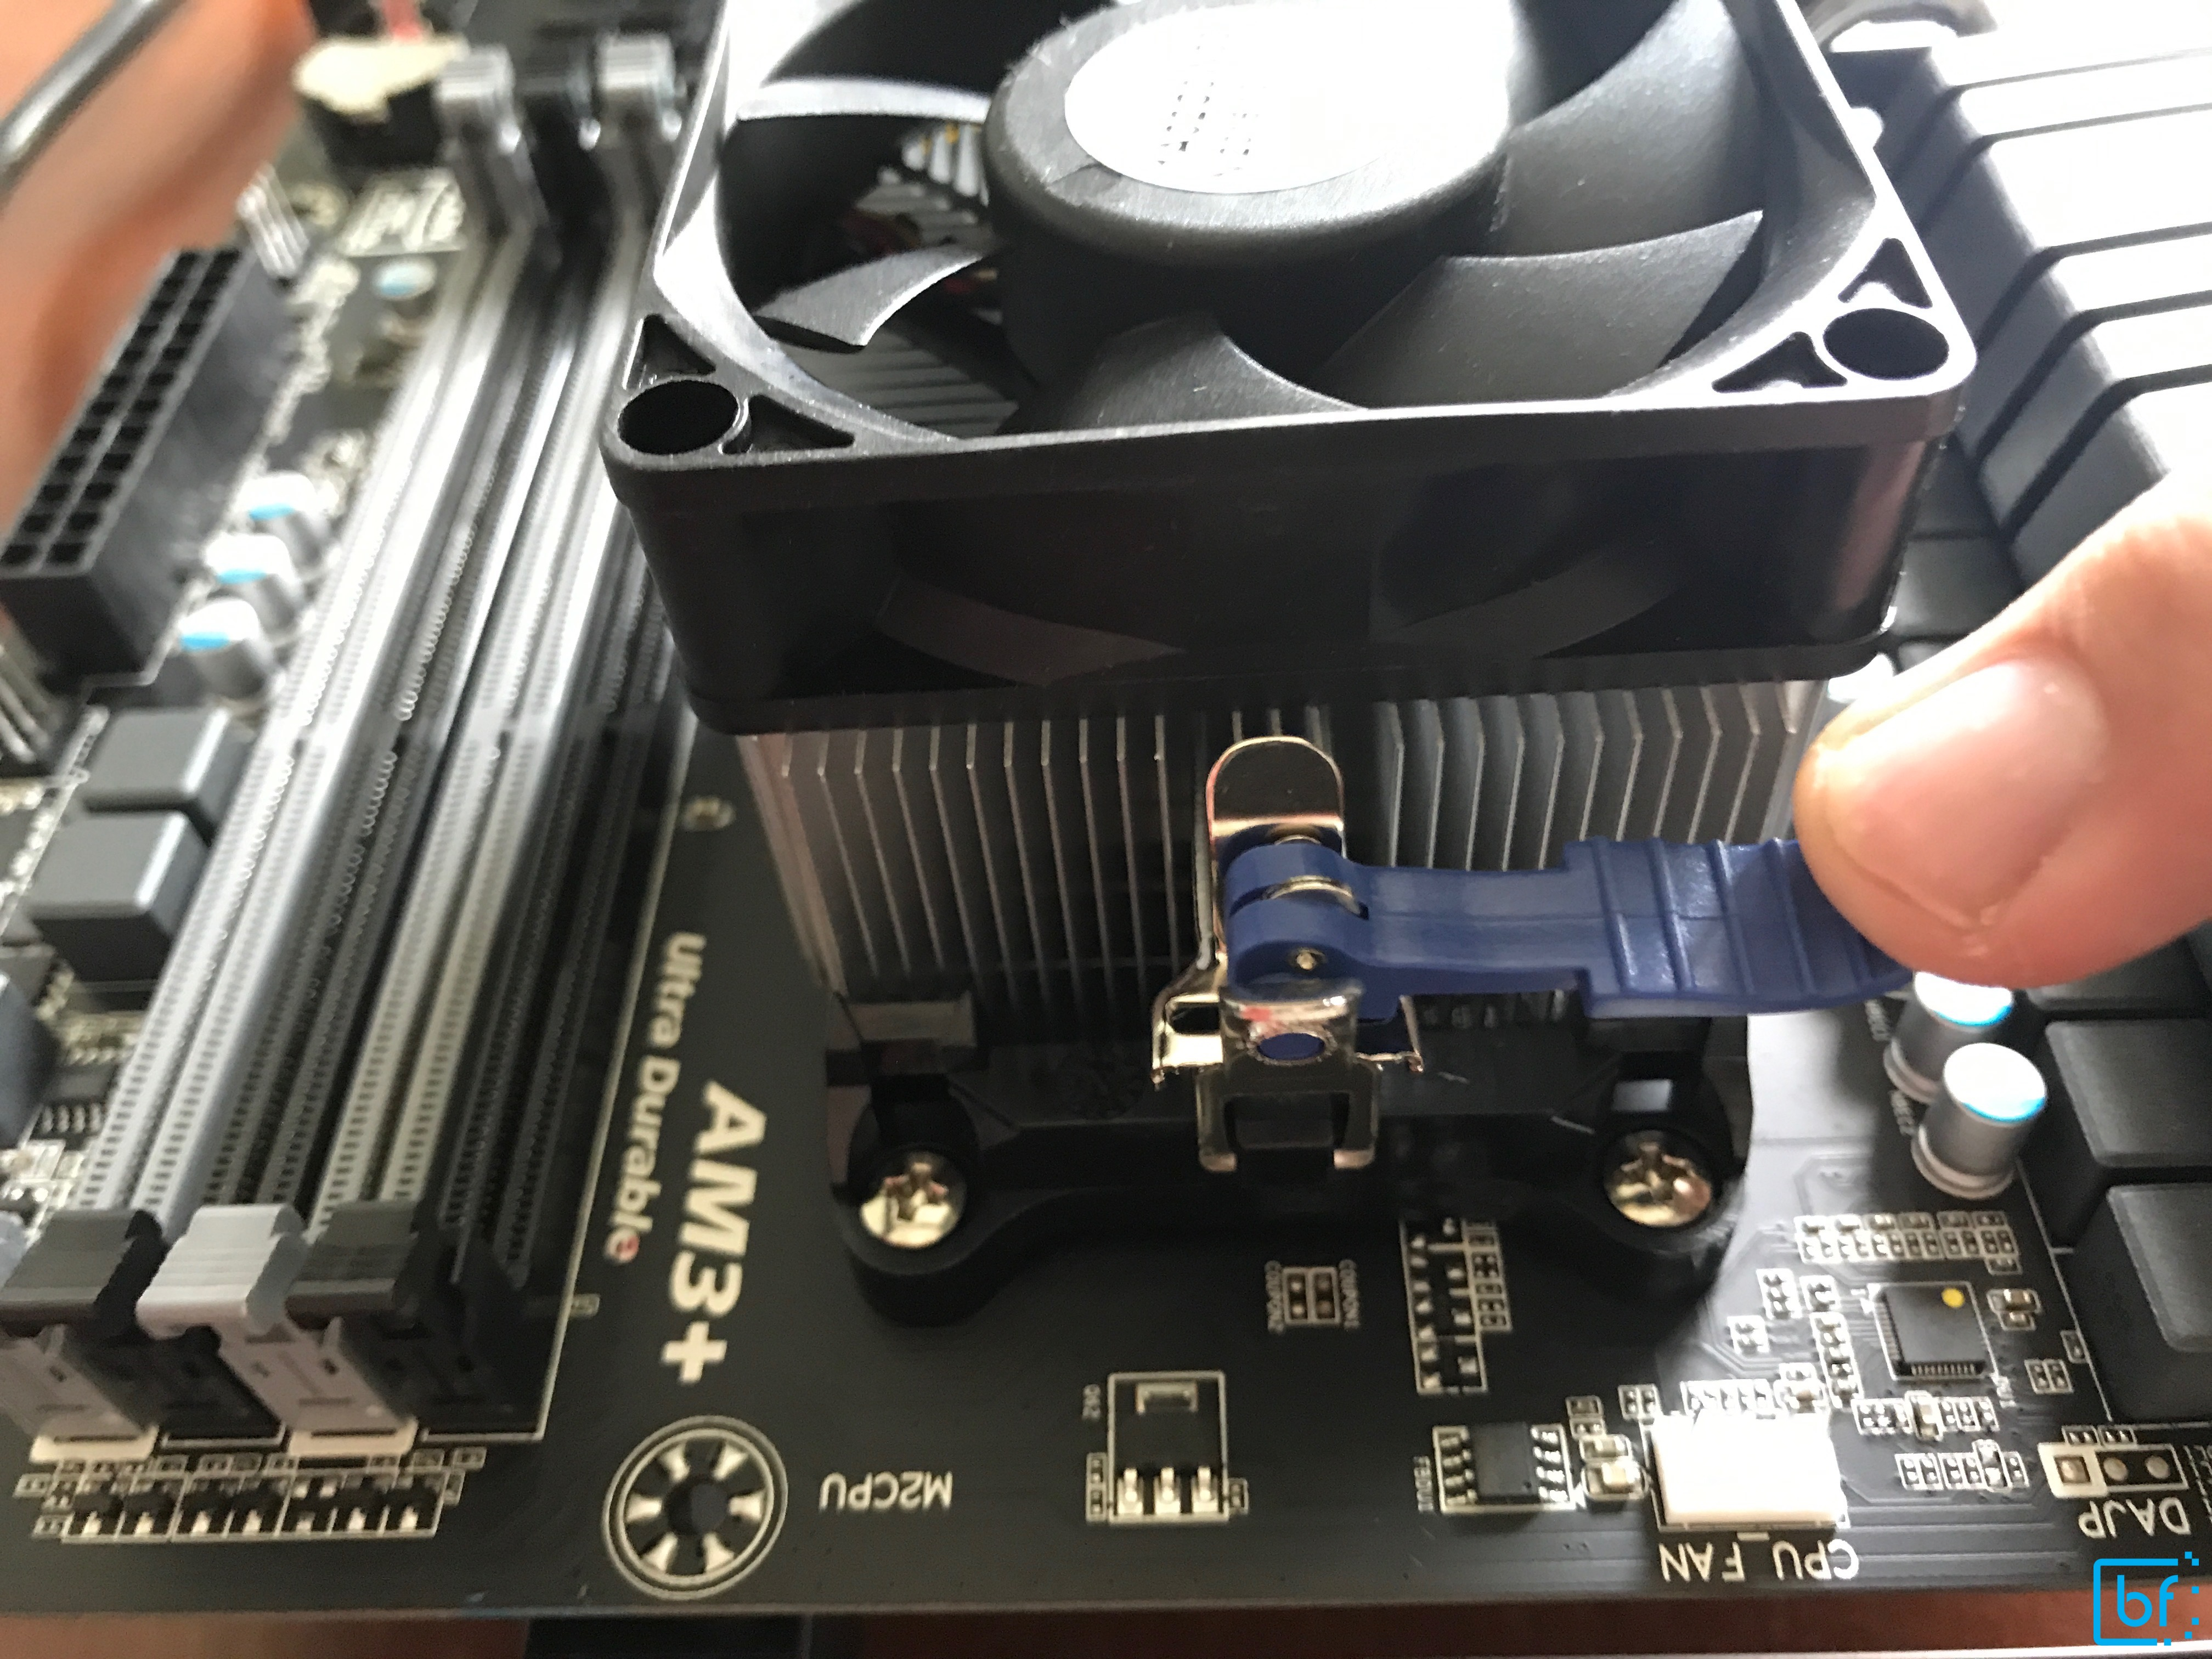 Securing CPU heatsink